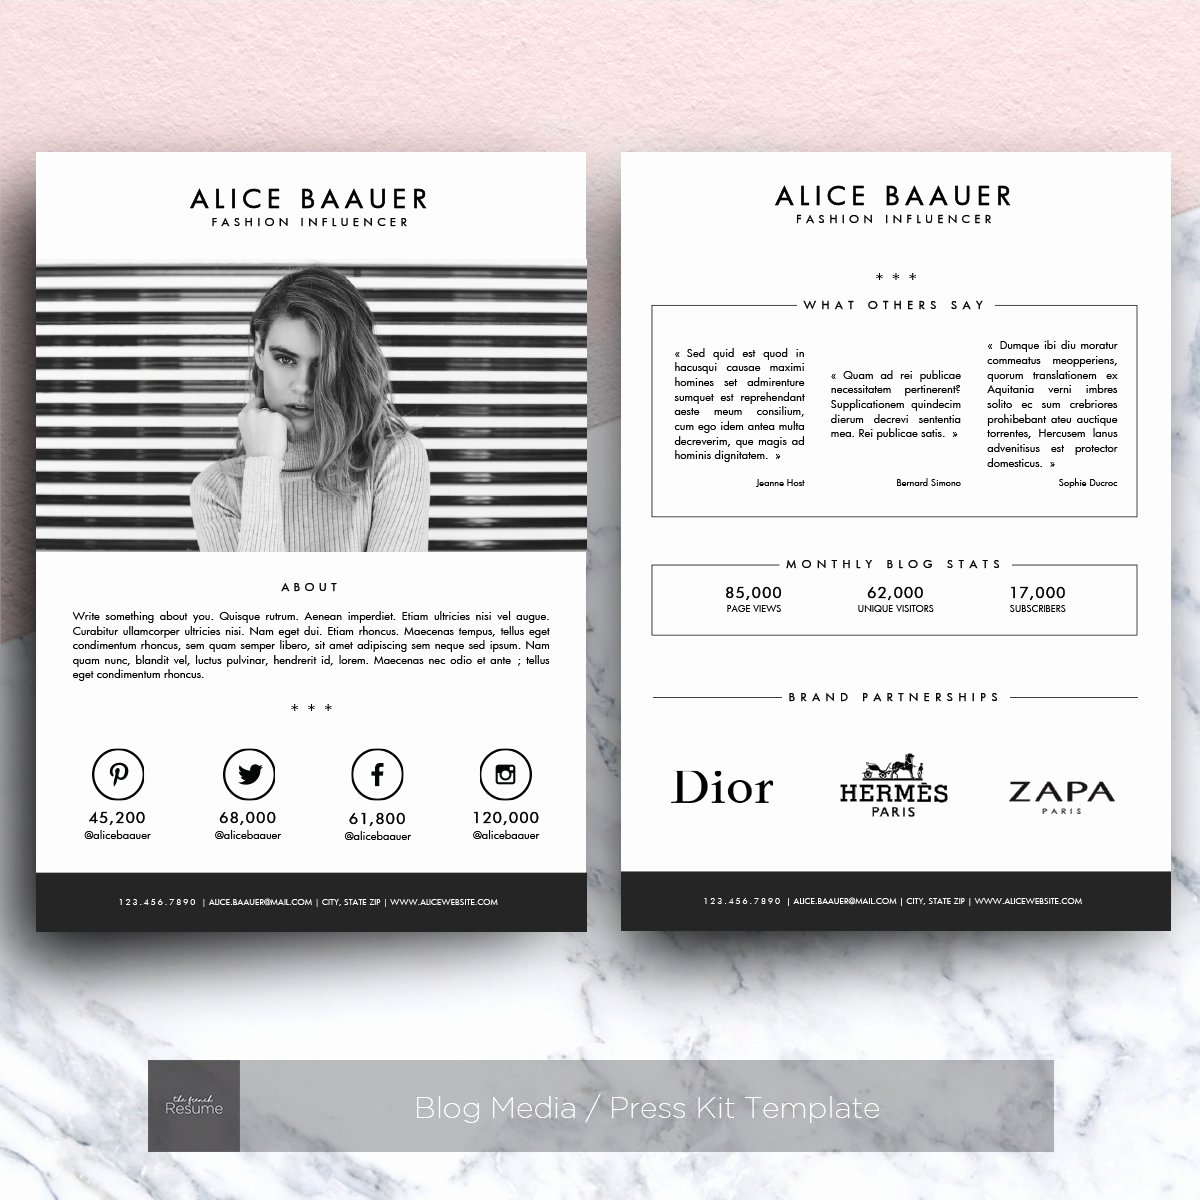 Free Press Kit Template Luxury Blog Media Press Kit Template Other Presentation